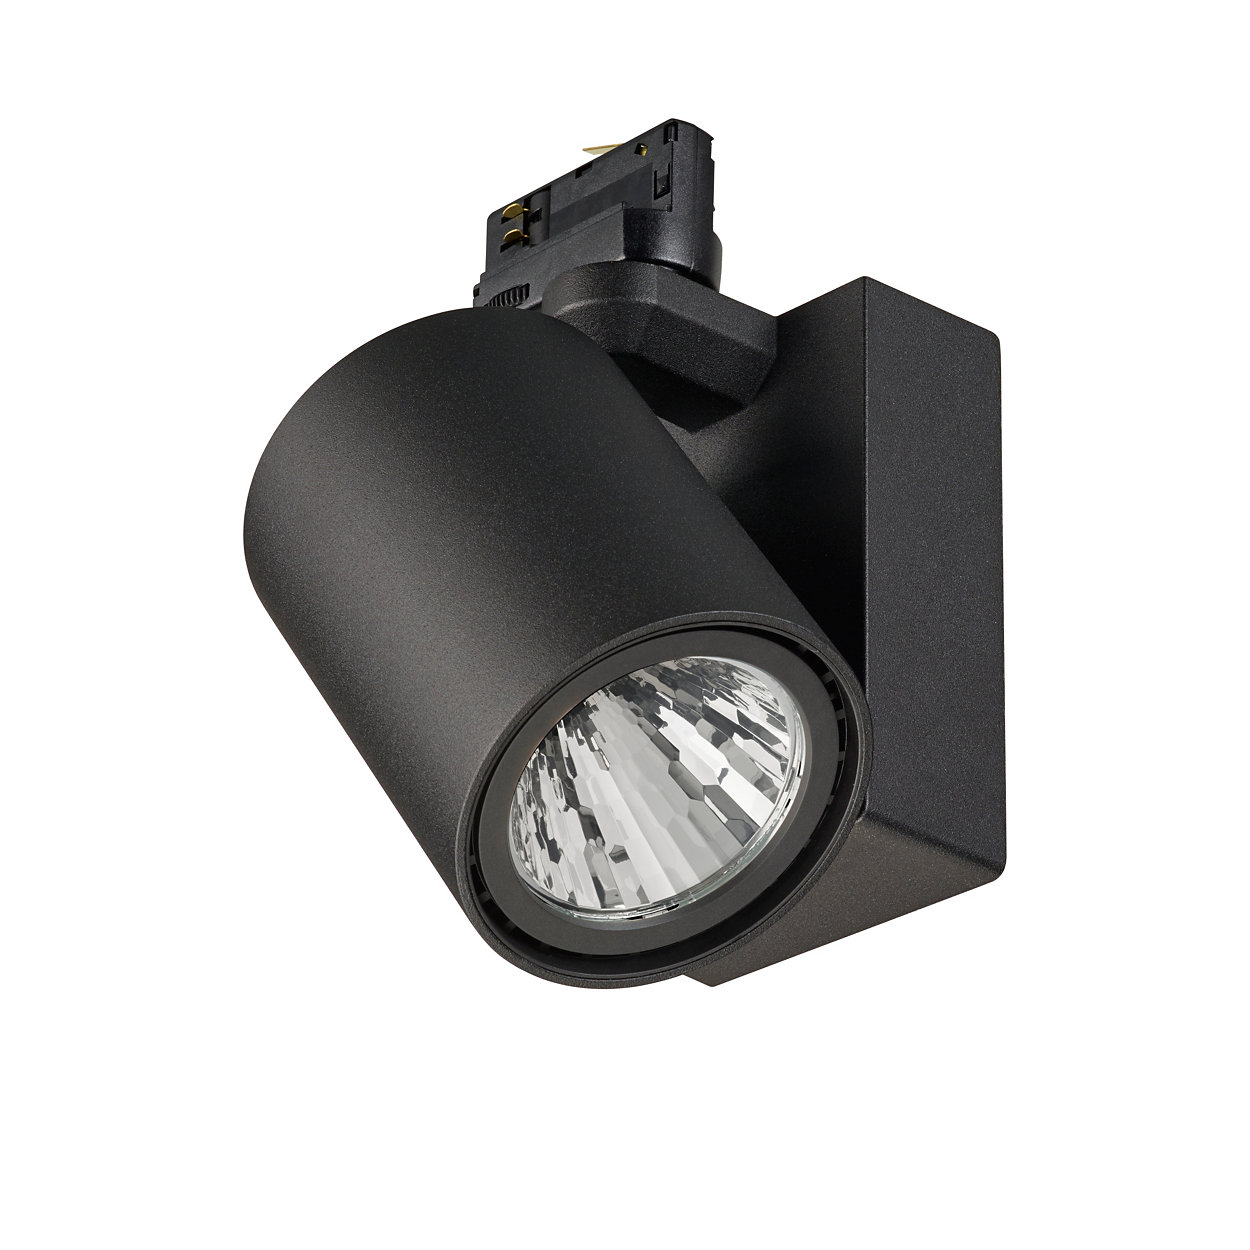 ProAir – an unrivaled combination of light quality and efficiency